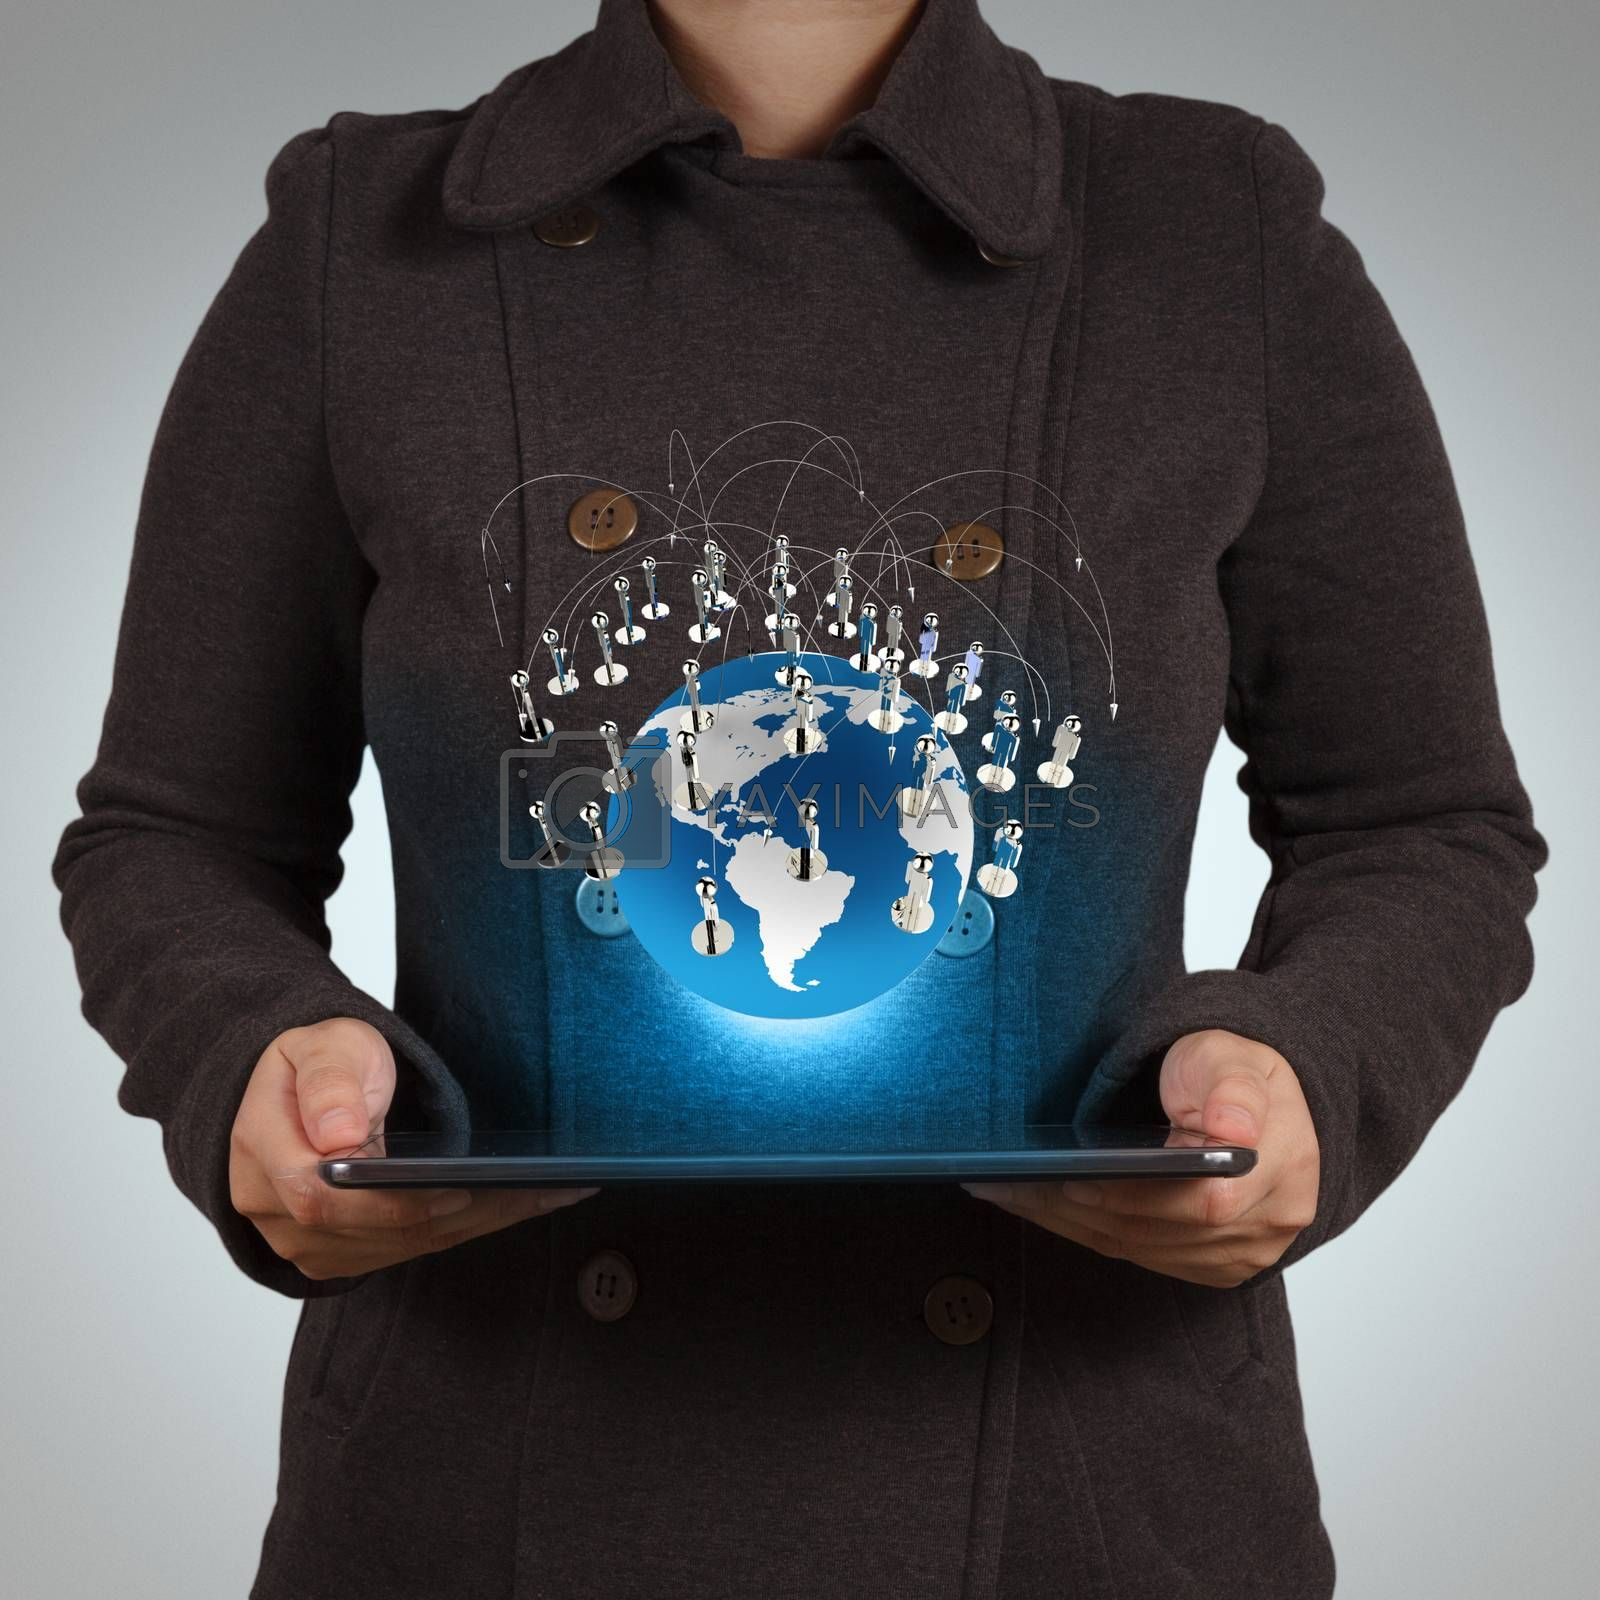 businesswoman using tablet computer shows social network concept